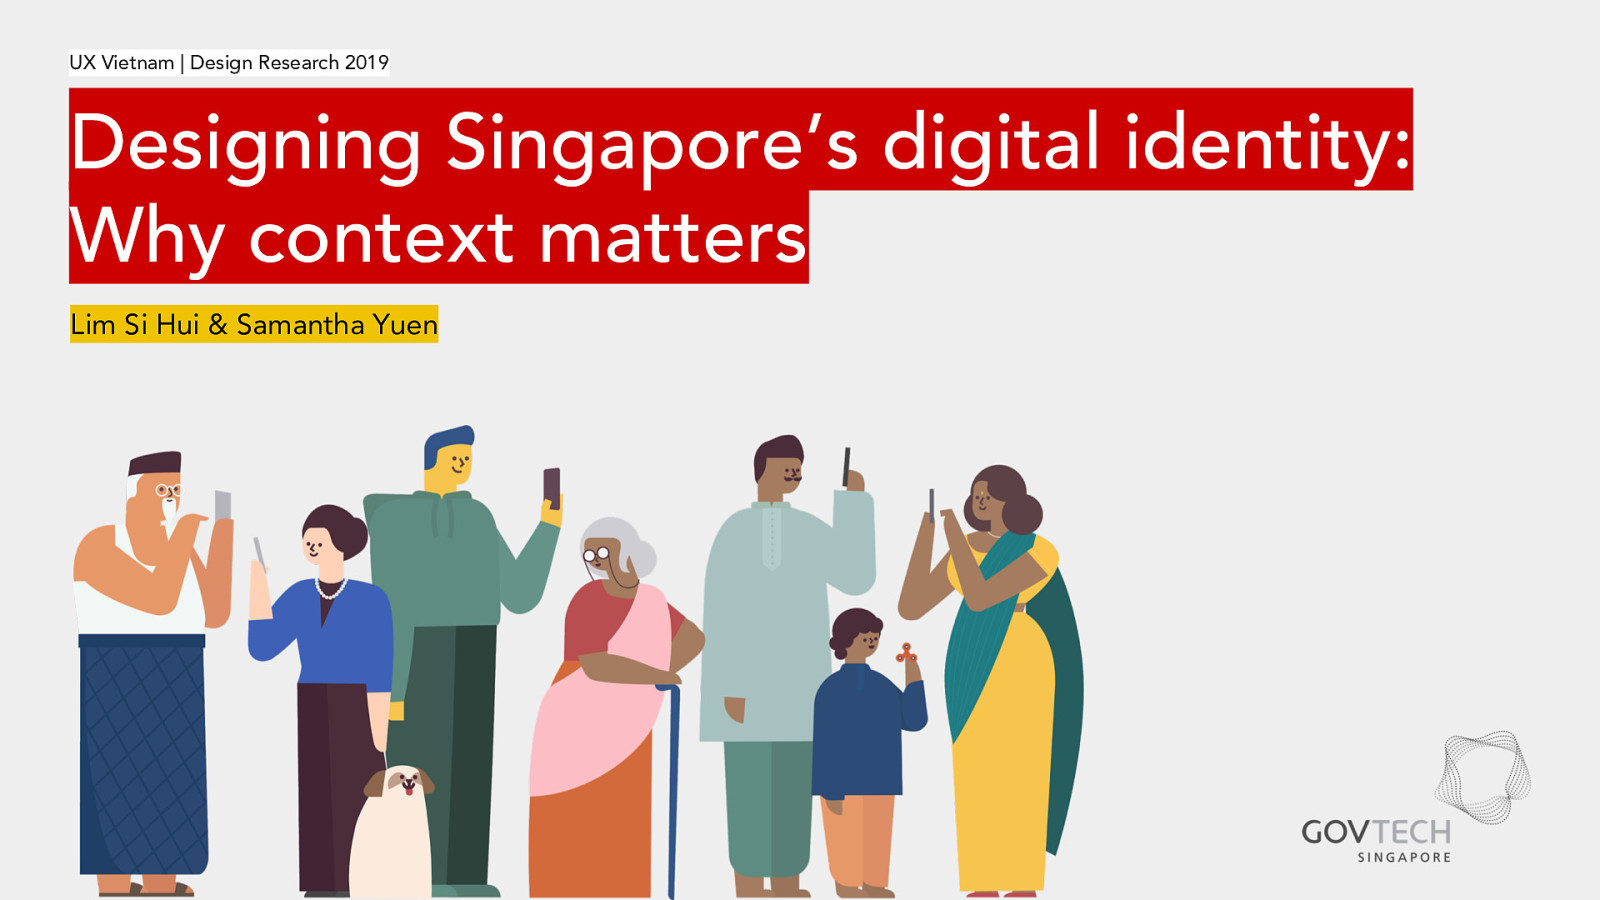 Designing Singapore's digital identity: Why context matters